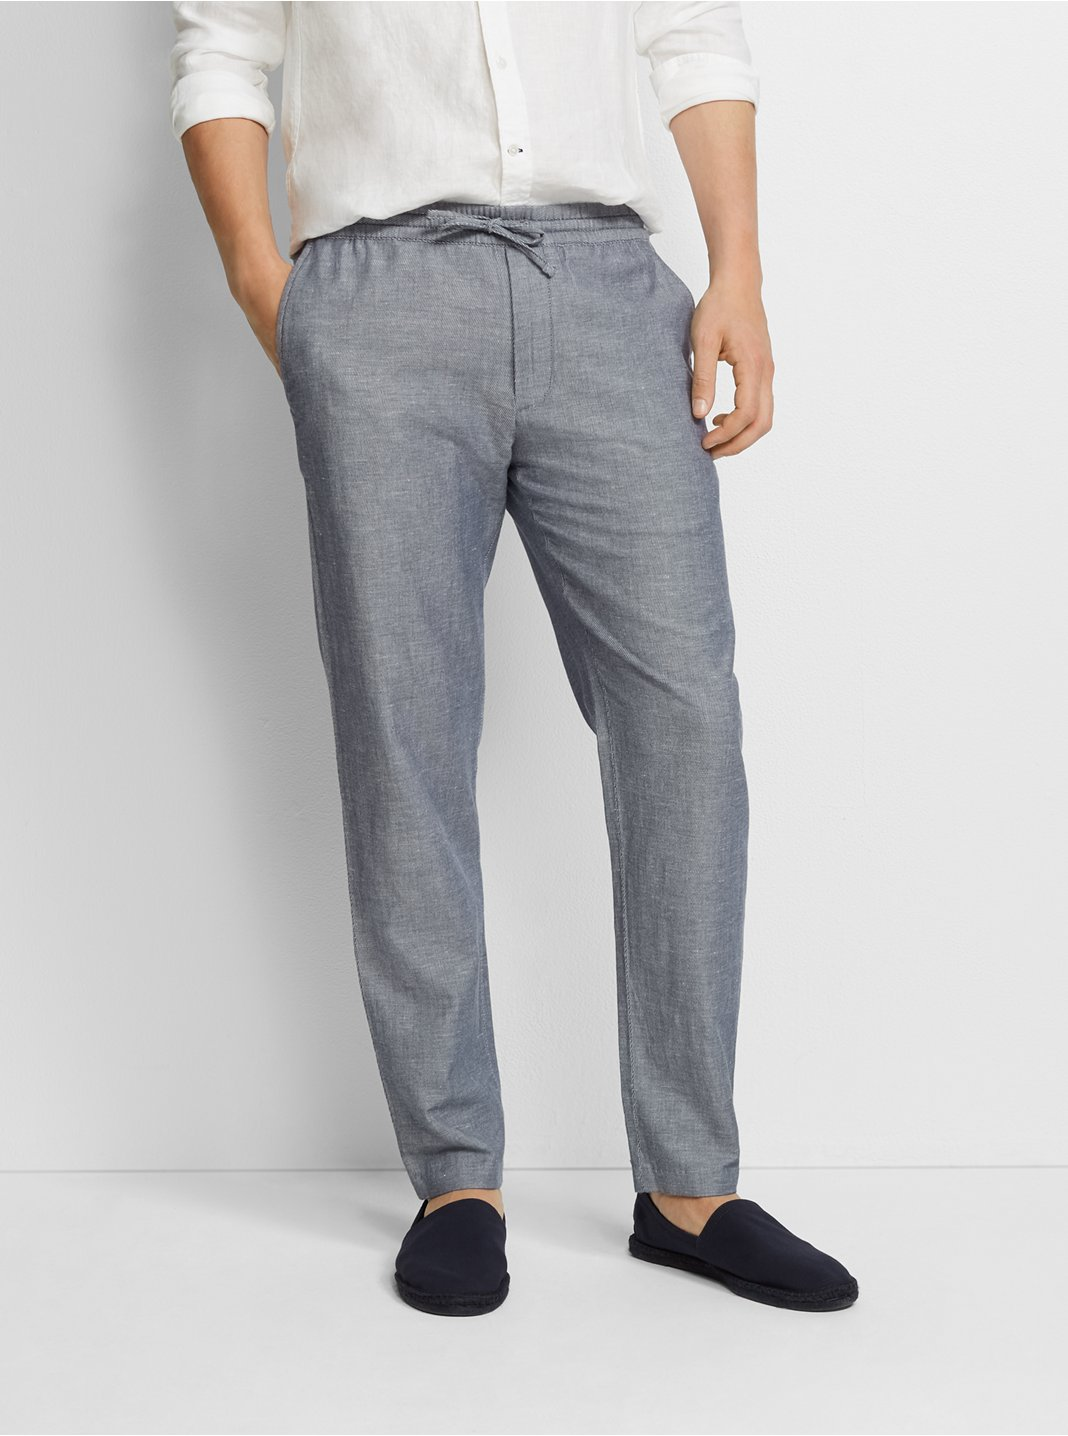 374ca9990e Mens Pants | Club Monaco